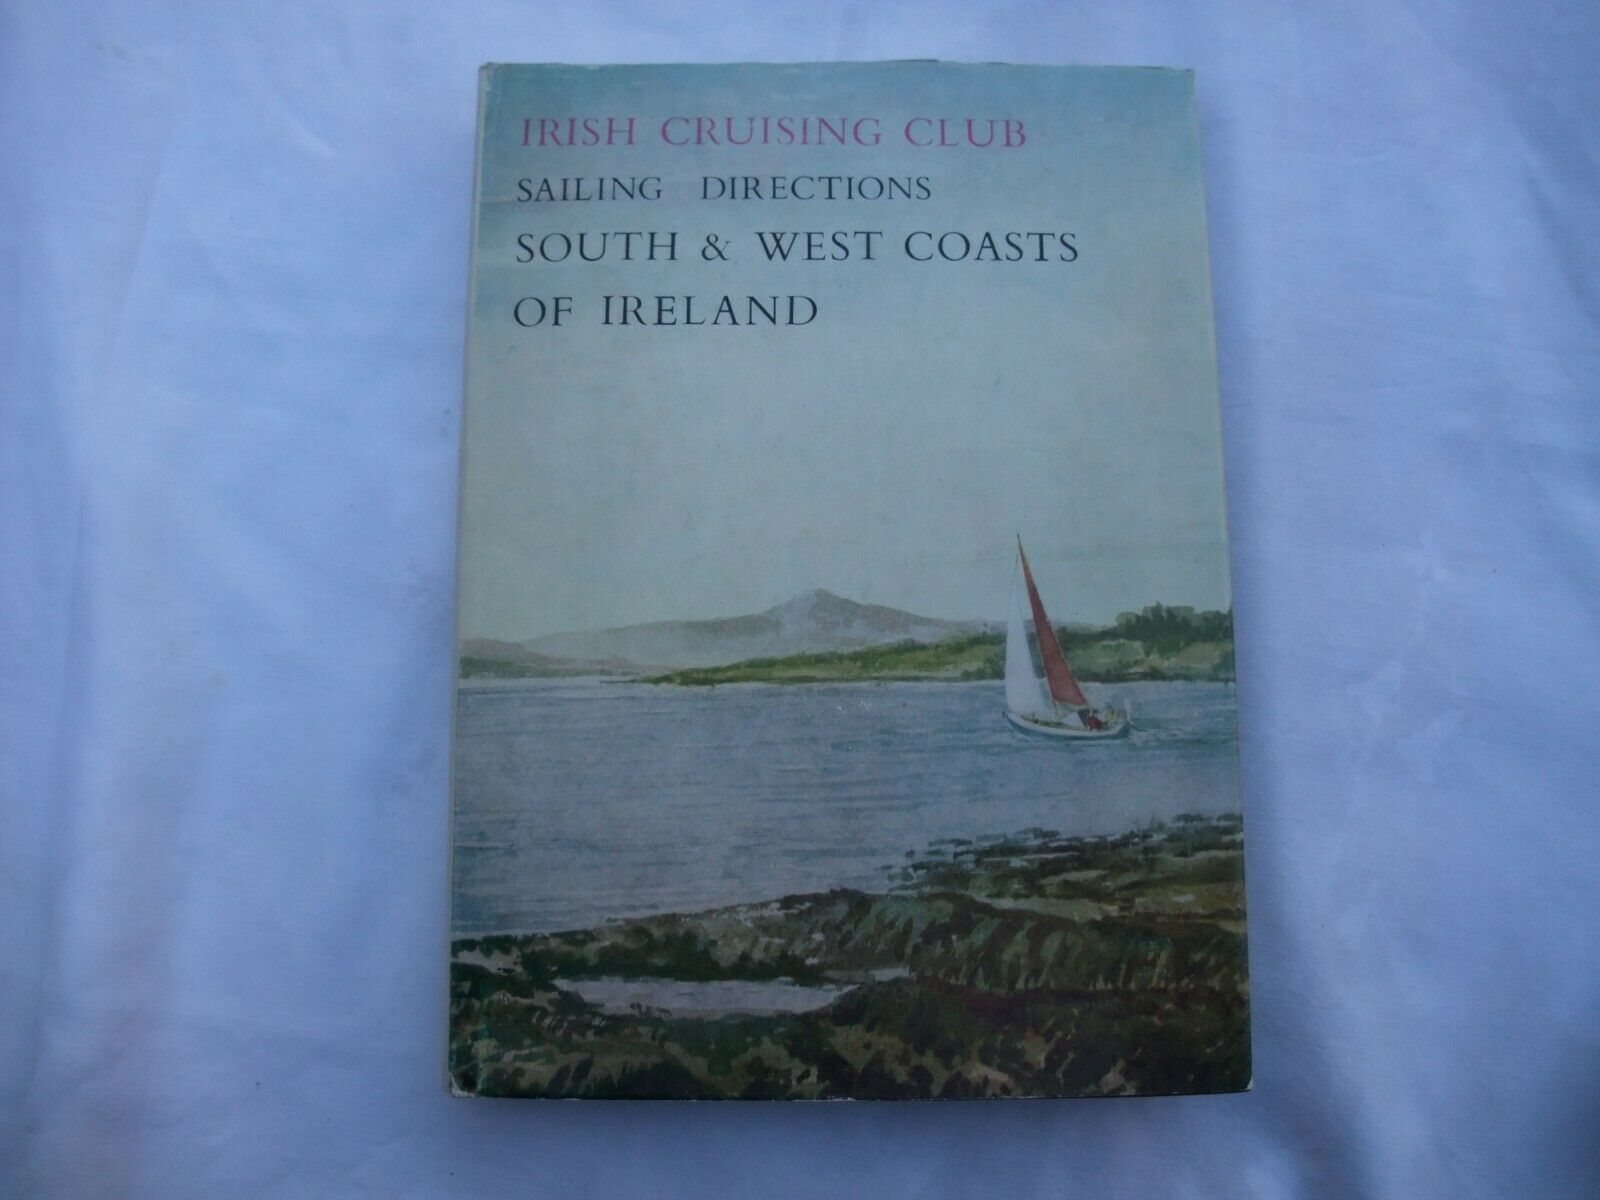 Primary image for Sailing Directions South & West Coasts of Ireland:  Irish Cruising Club 1978